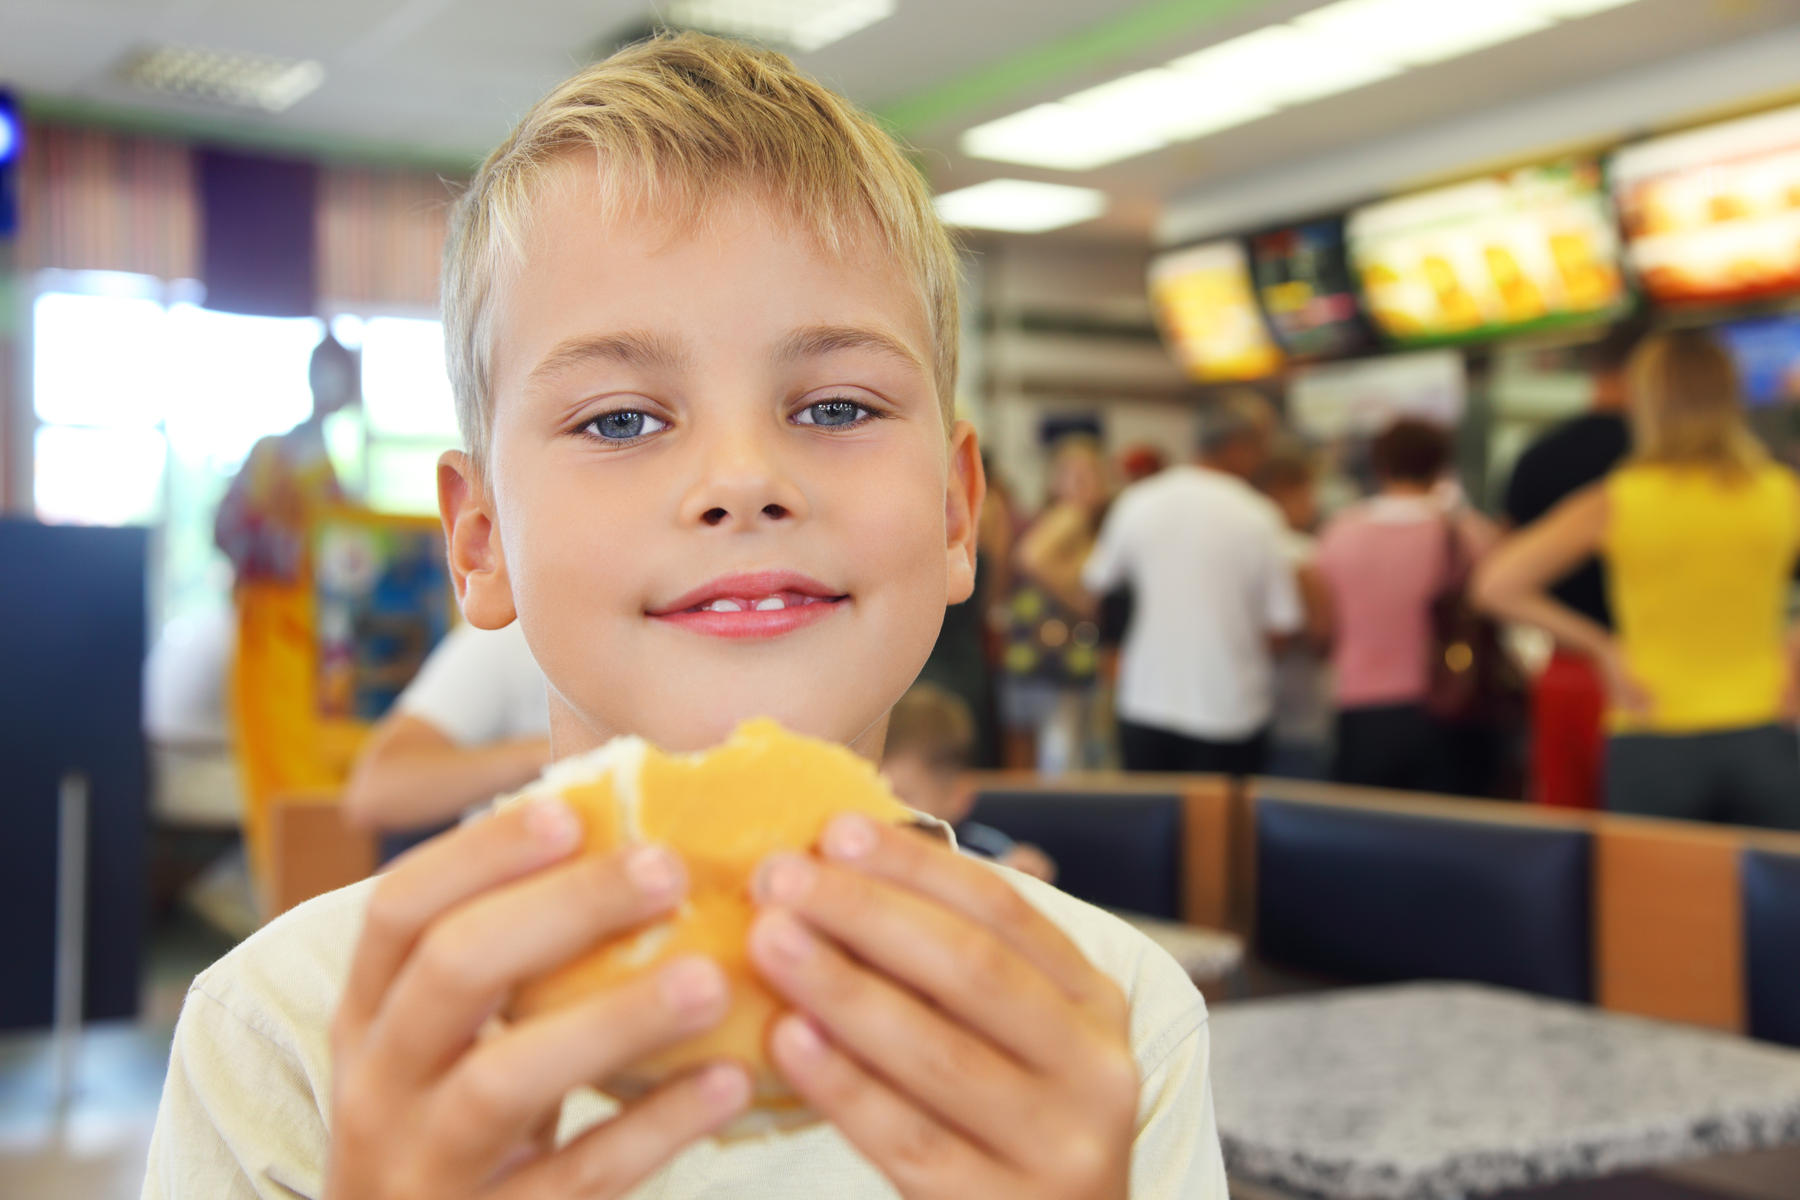 TV Ads Can Make Children Want to Eat Fast Food